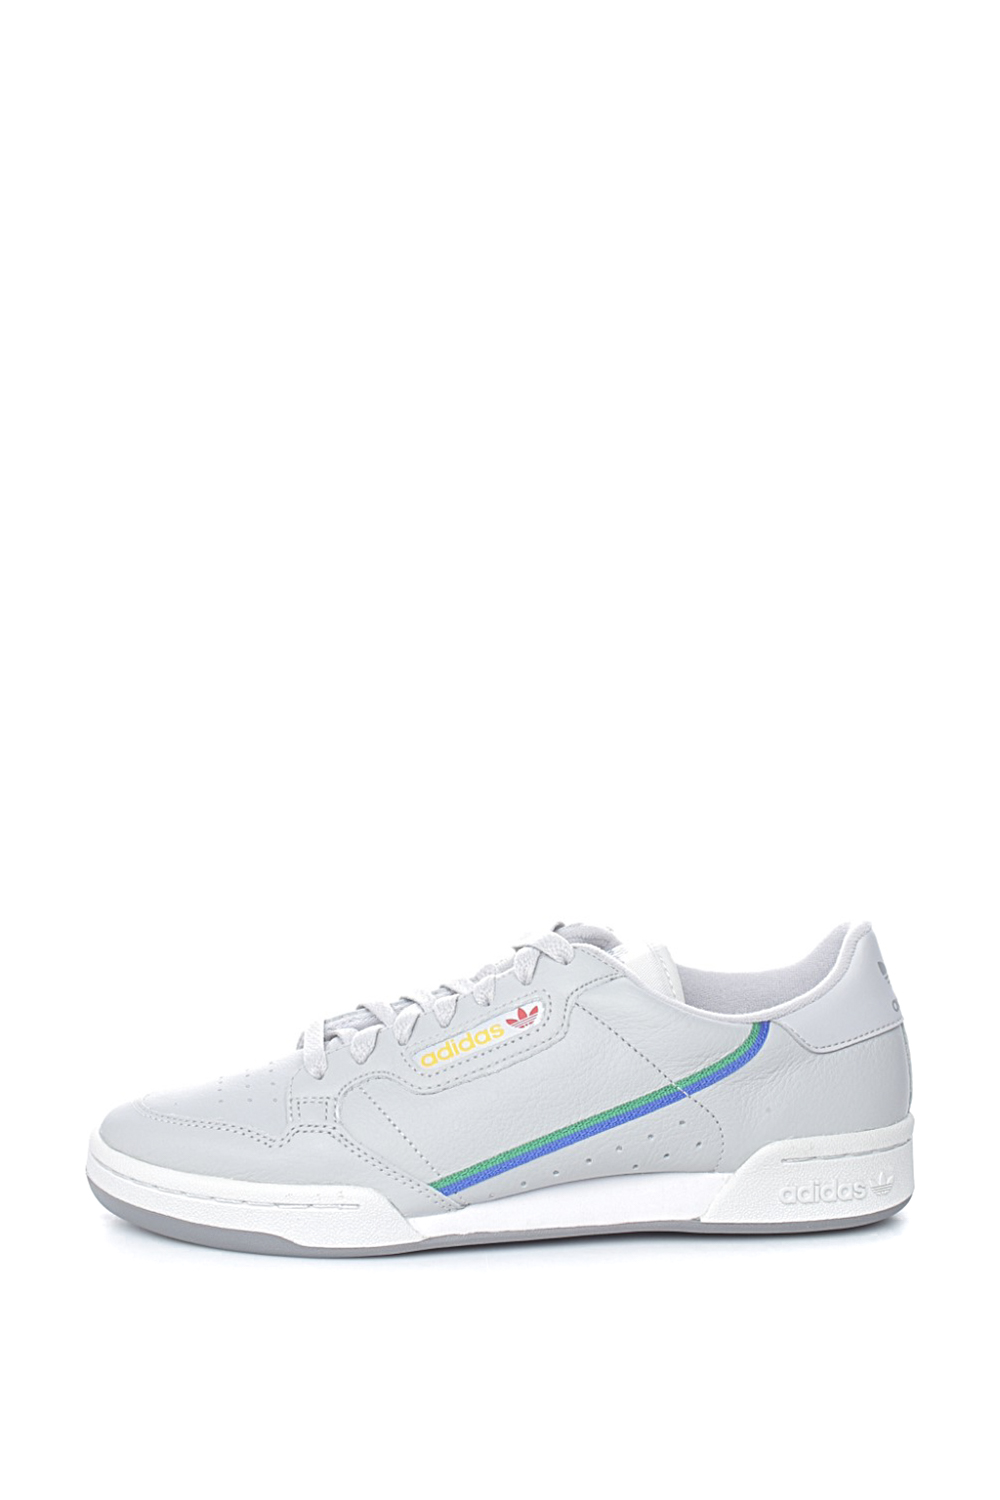 4d74dd05b40 Collective Online adidas Originals – Ανδρικά sneakers adidas CONTINENTAL 80  γκρι